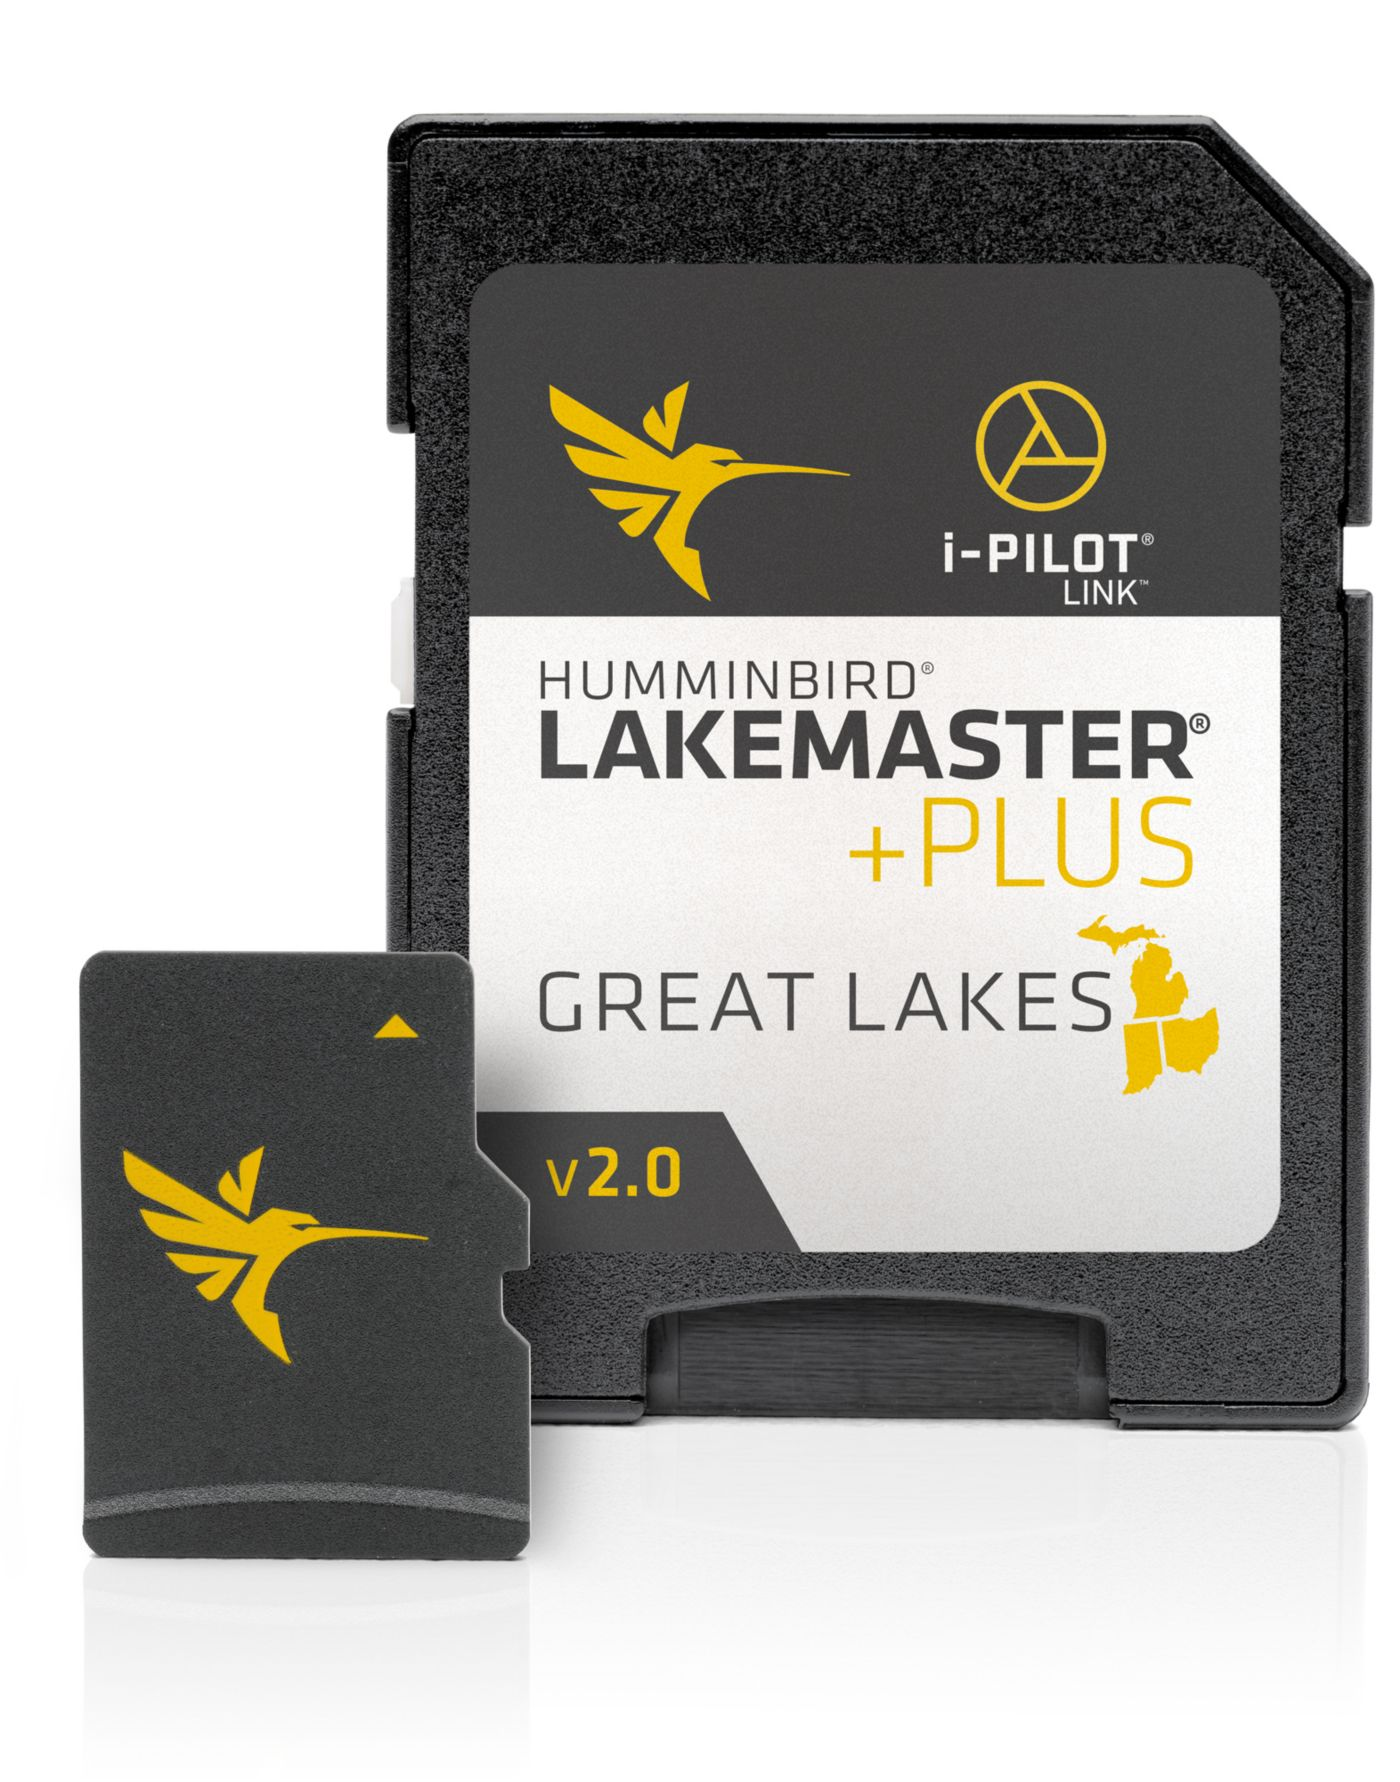 Humminbird LakeMaster PLUS Great Lakes V2 Map Card